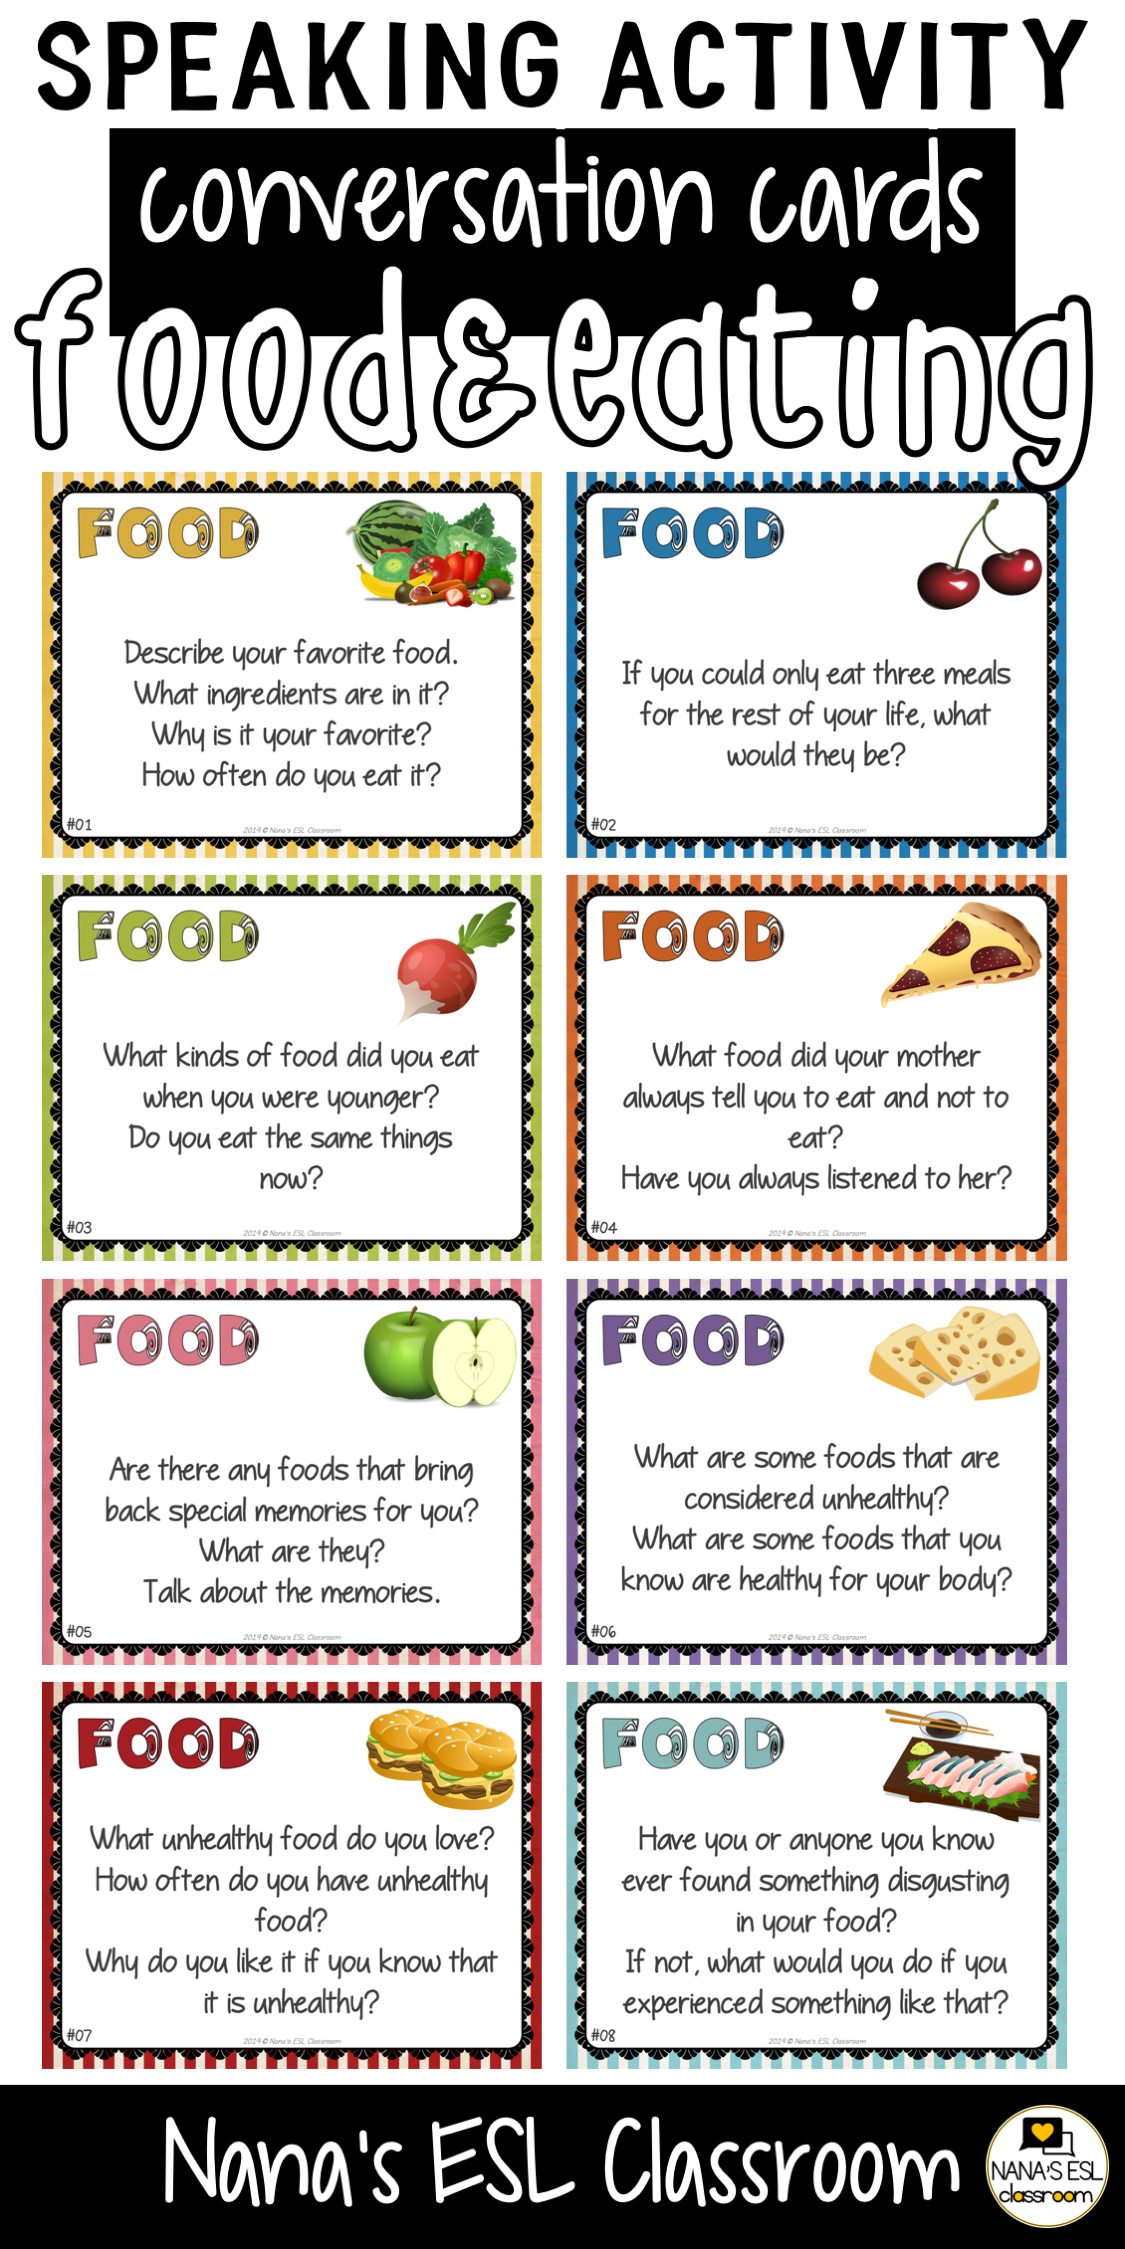 Conversation Starters About Food And Eating In